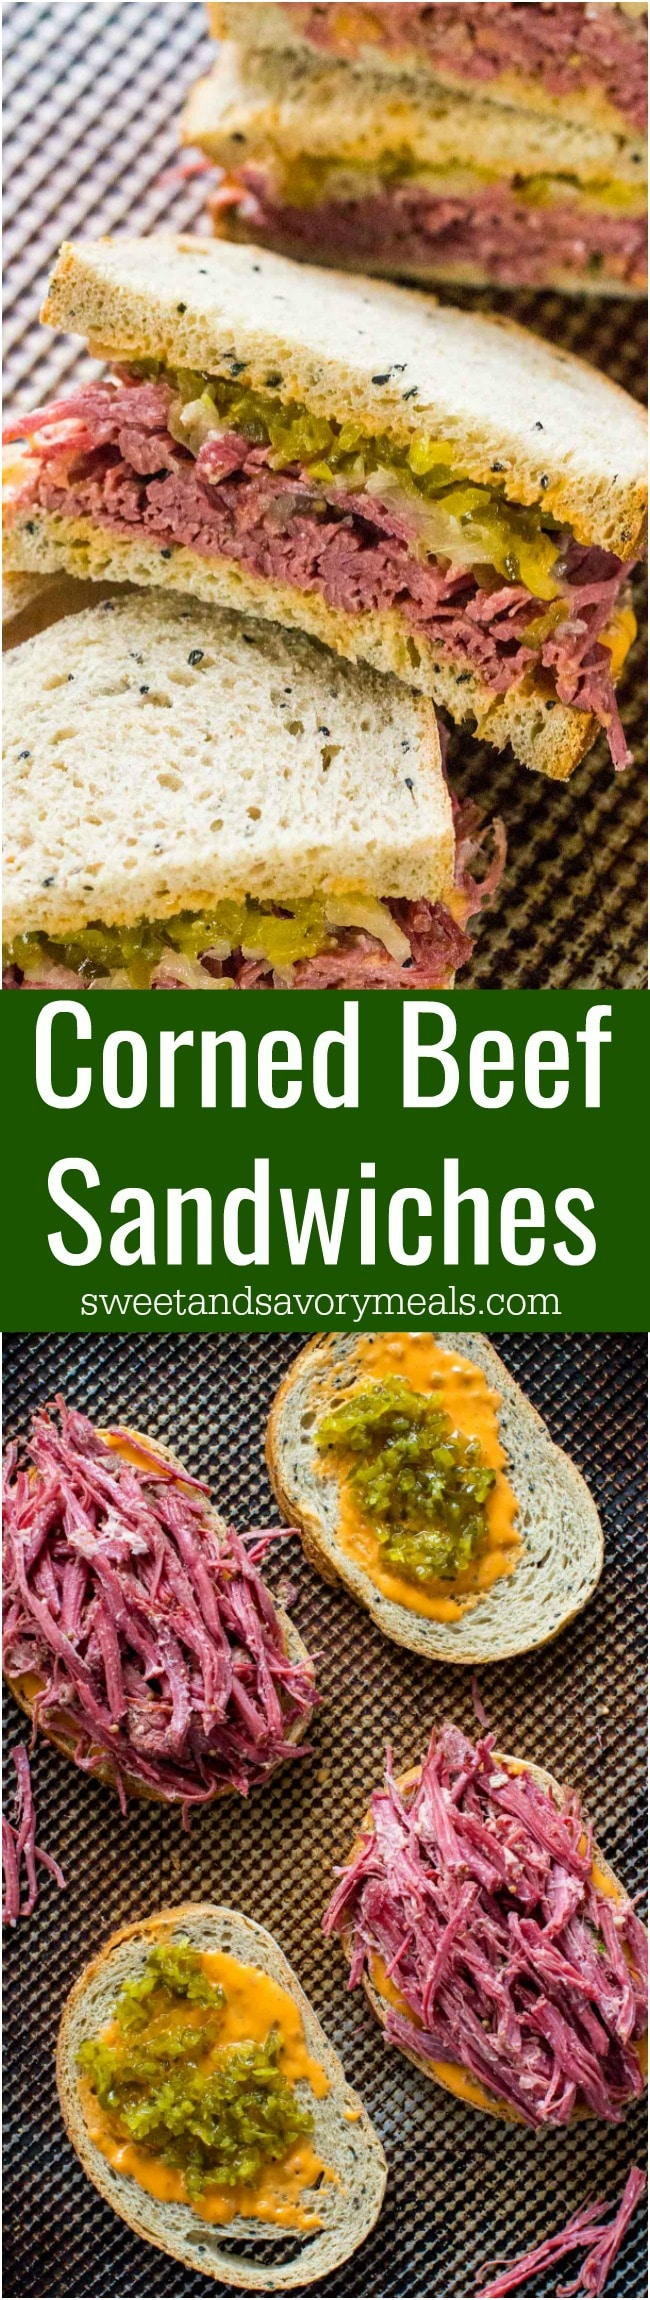 Corned Beef Sandwiches are the homemade take on the classic deli sandwiches of corned beef with toasted rye bread, sauerkraut and Russian dressing.